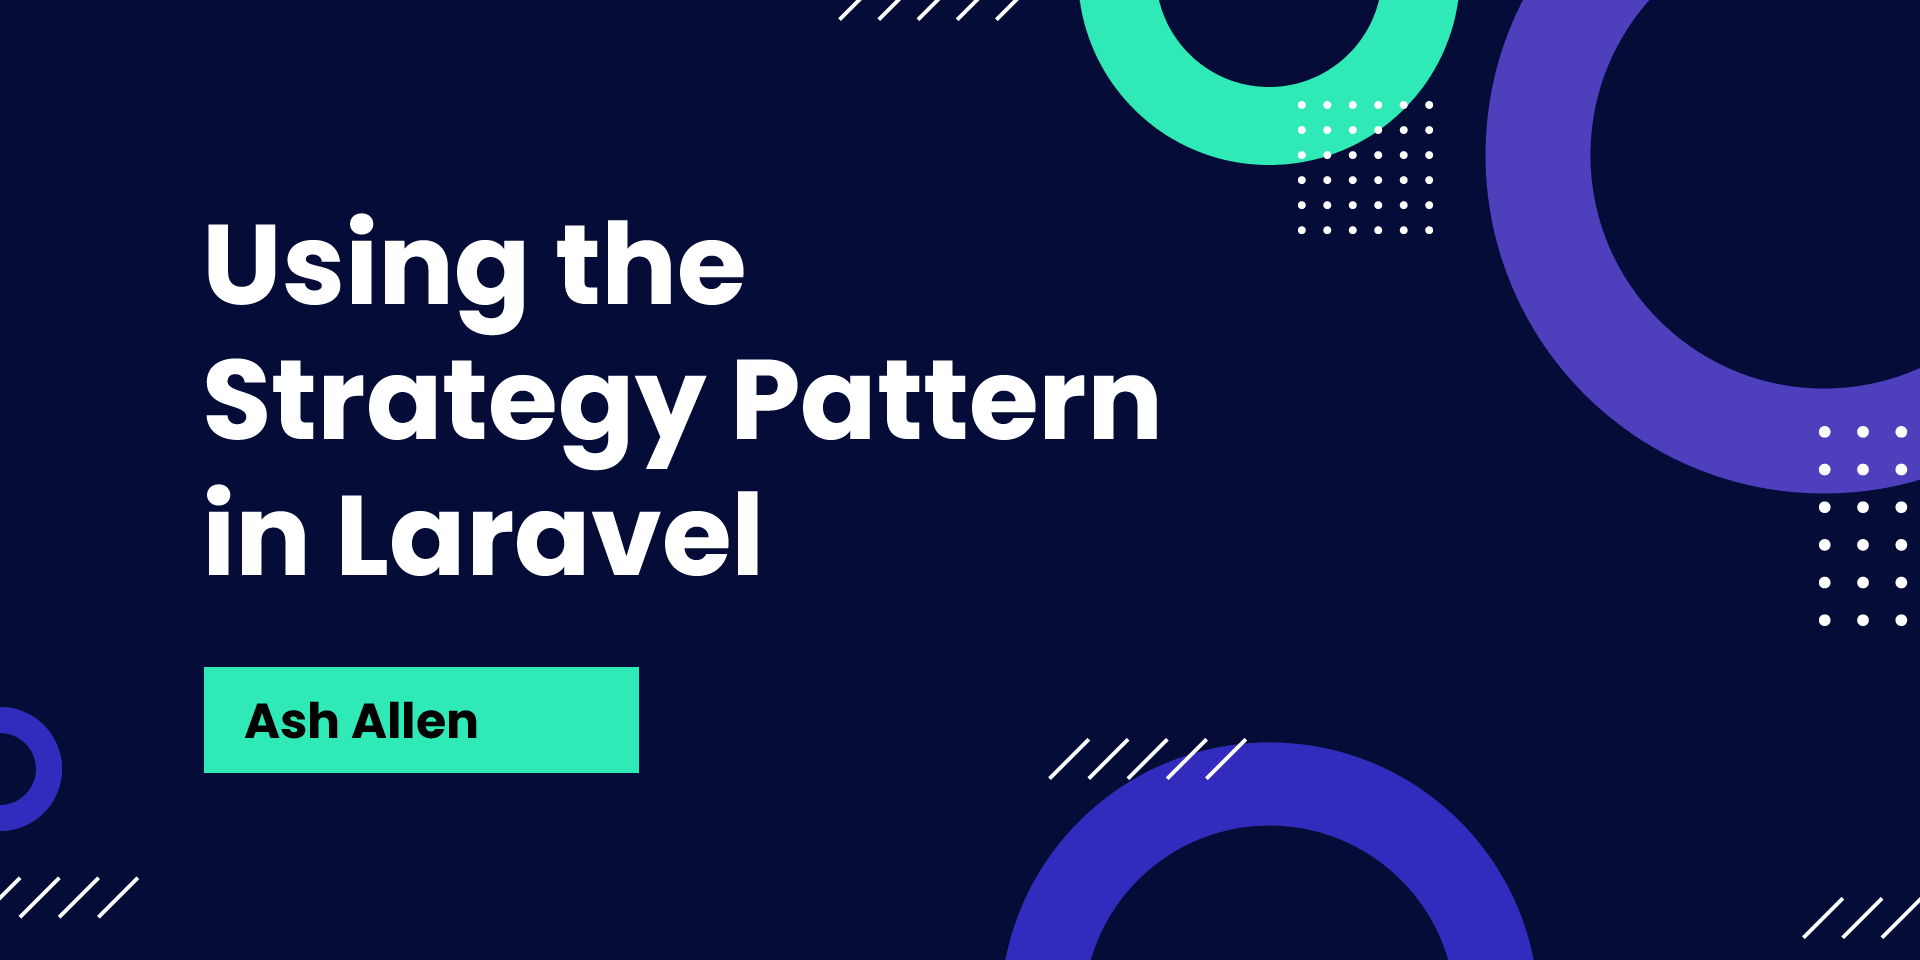 Learn about the strategy pattern and how we can use it in your Laravel codebase to improve the extendability and maintainability of your code.